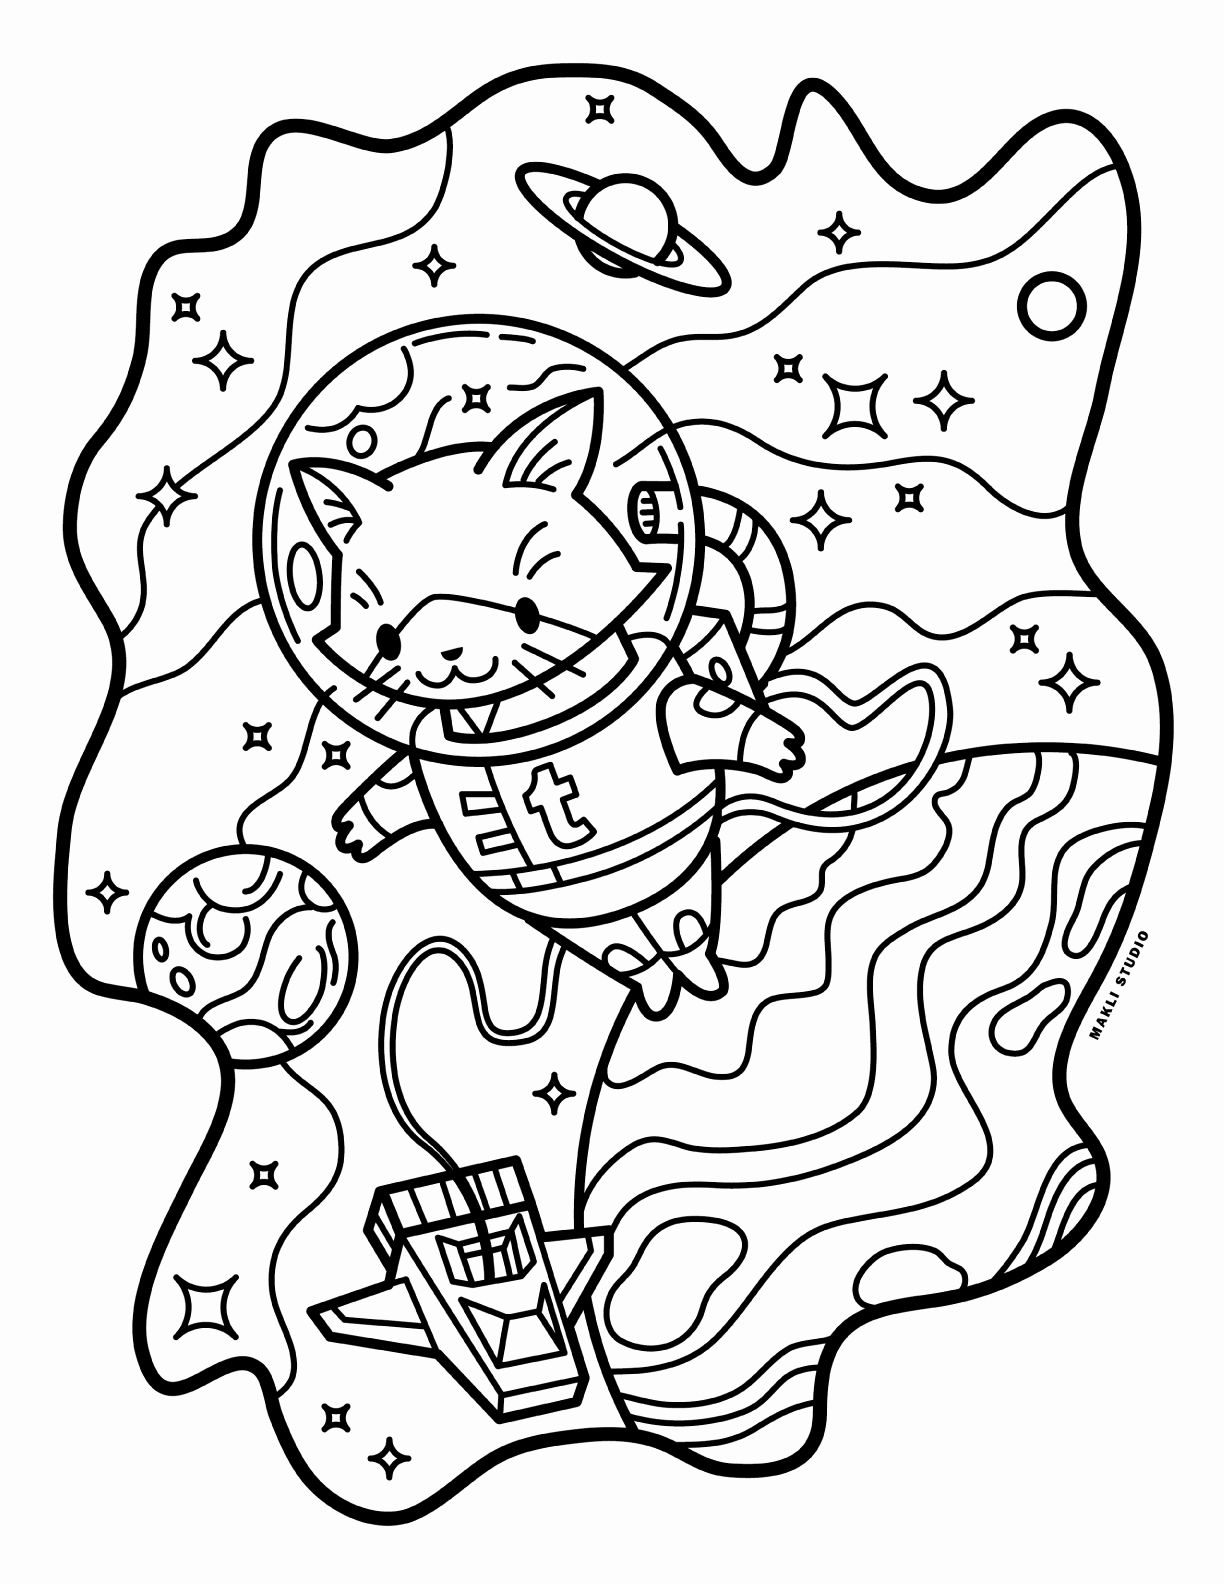 Coloring Pictures Of Space Elegant Aesthetic Space Tumblr Coloring Pages Kesho Wazo In 2020 Space Coloring Pages Planet Coloring Pages Tumblr Coloring Pages